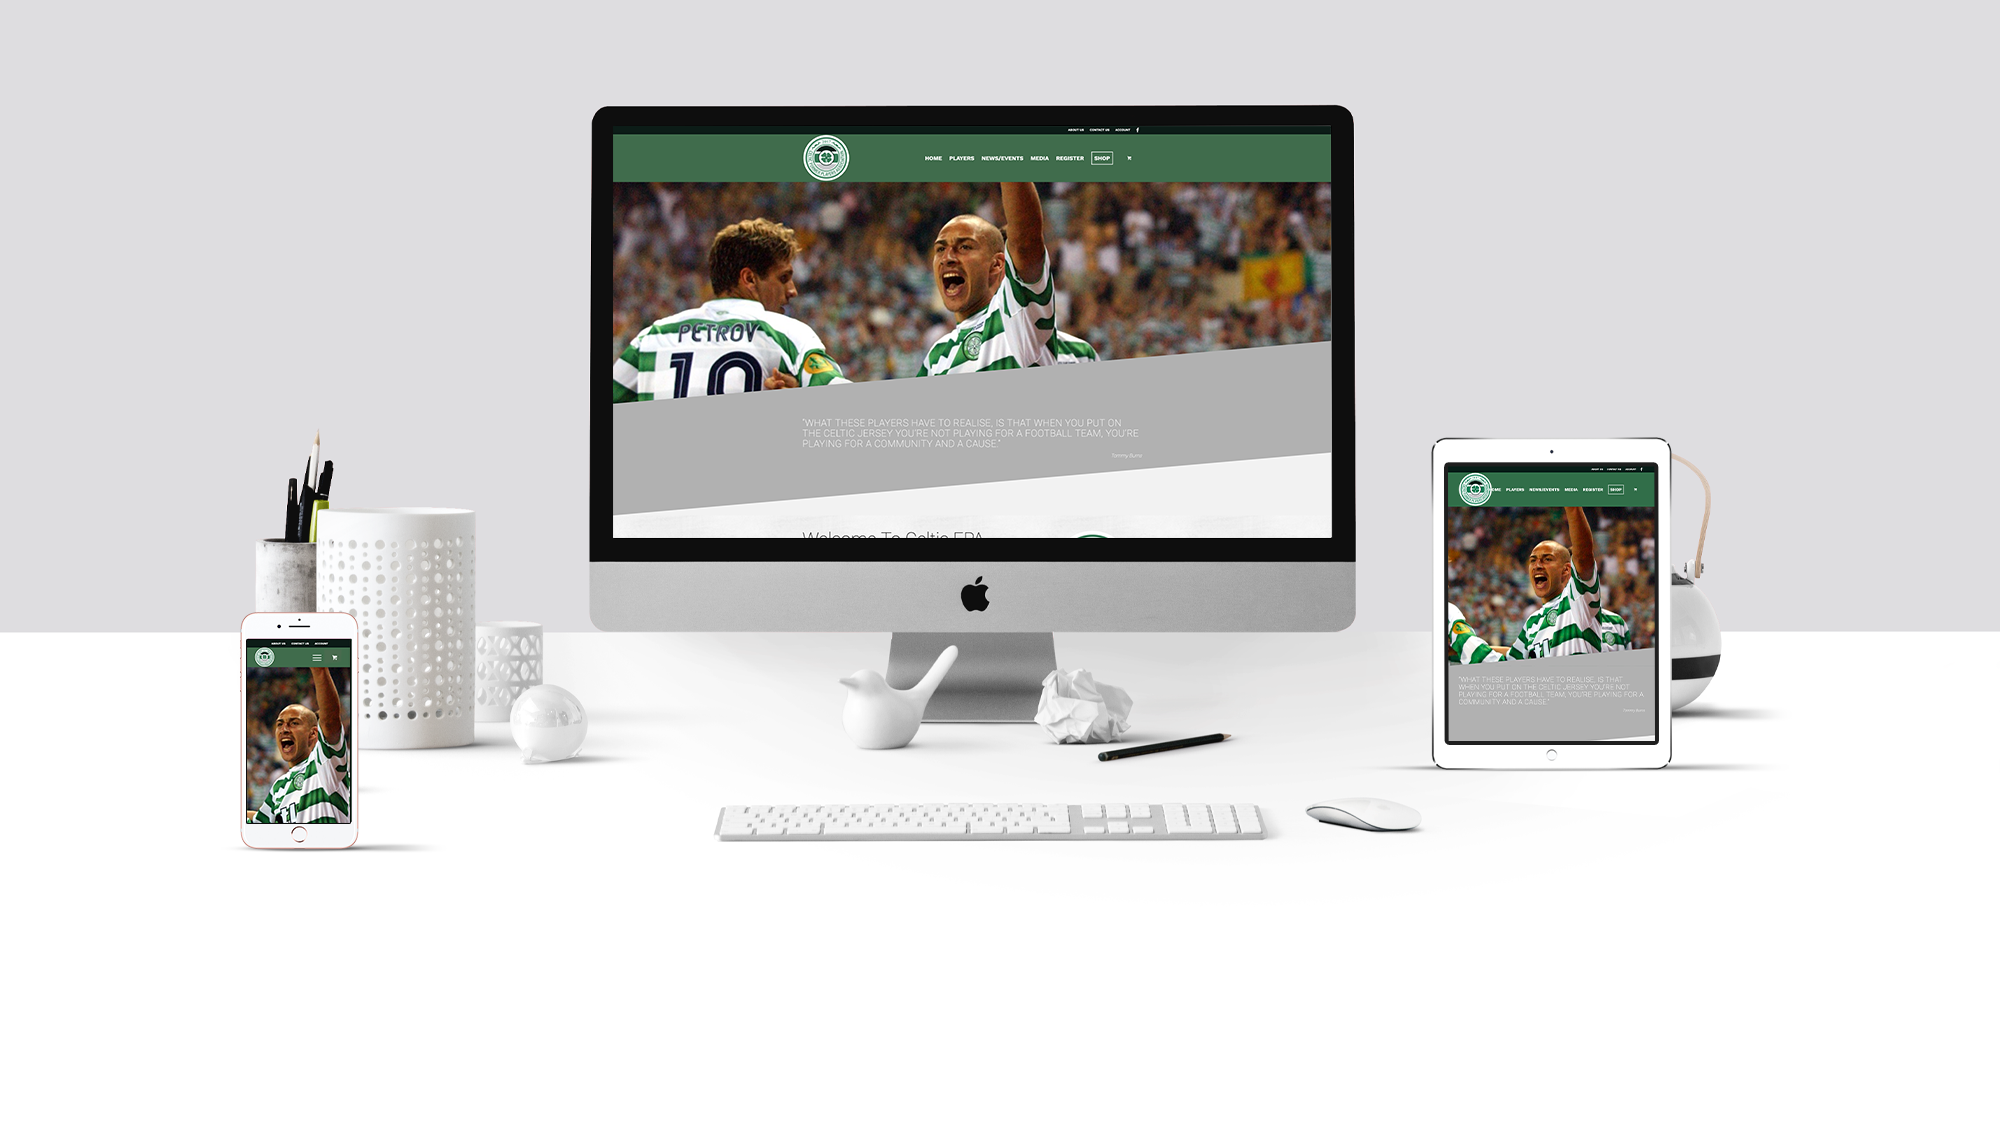 celtic fpa desk